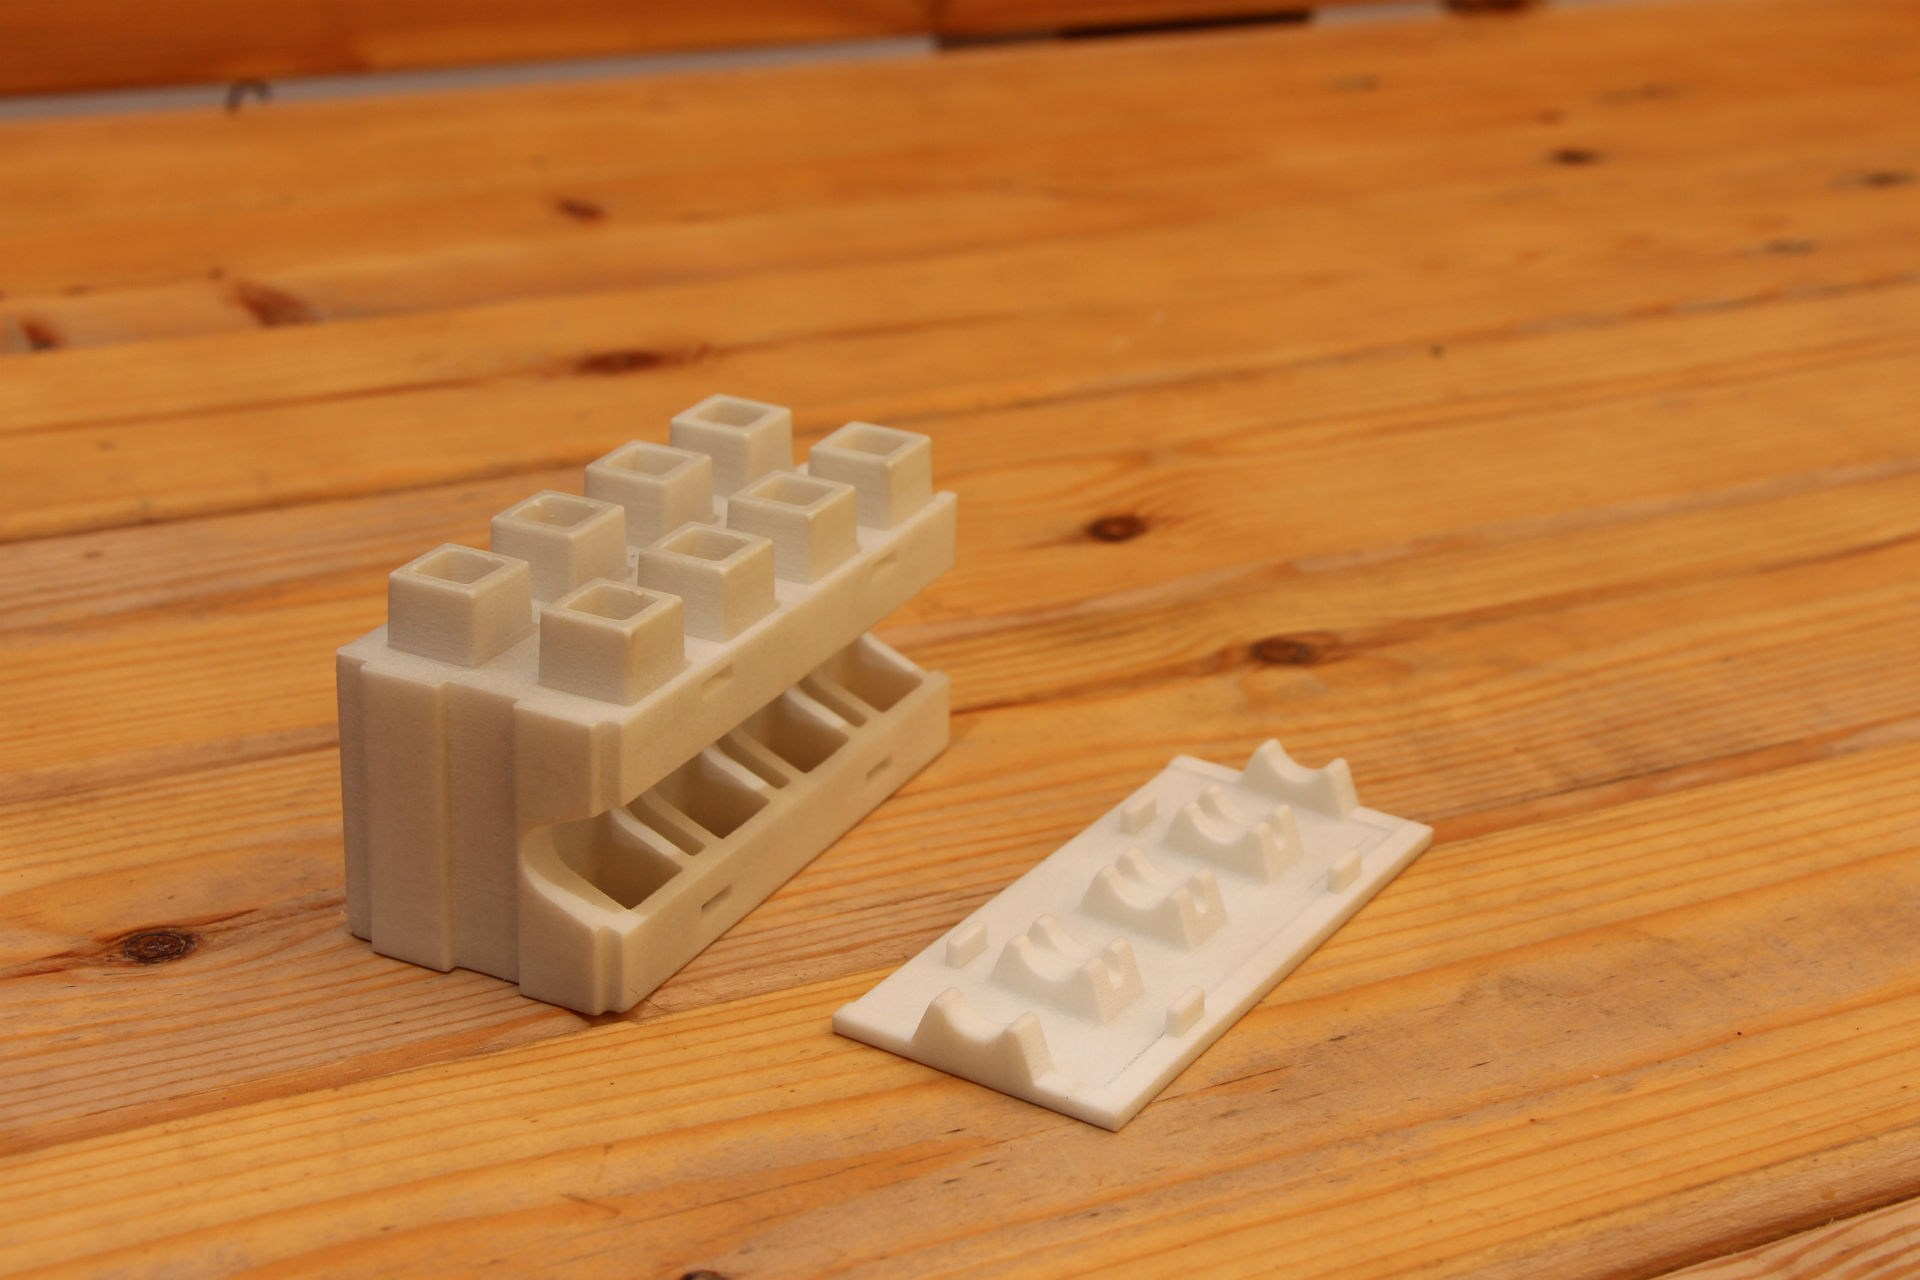 Prototypes for a new type of brick.